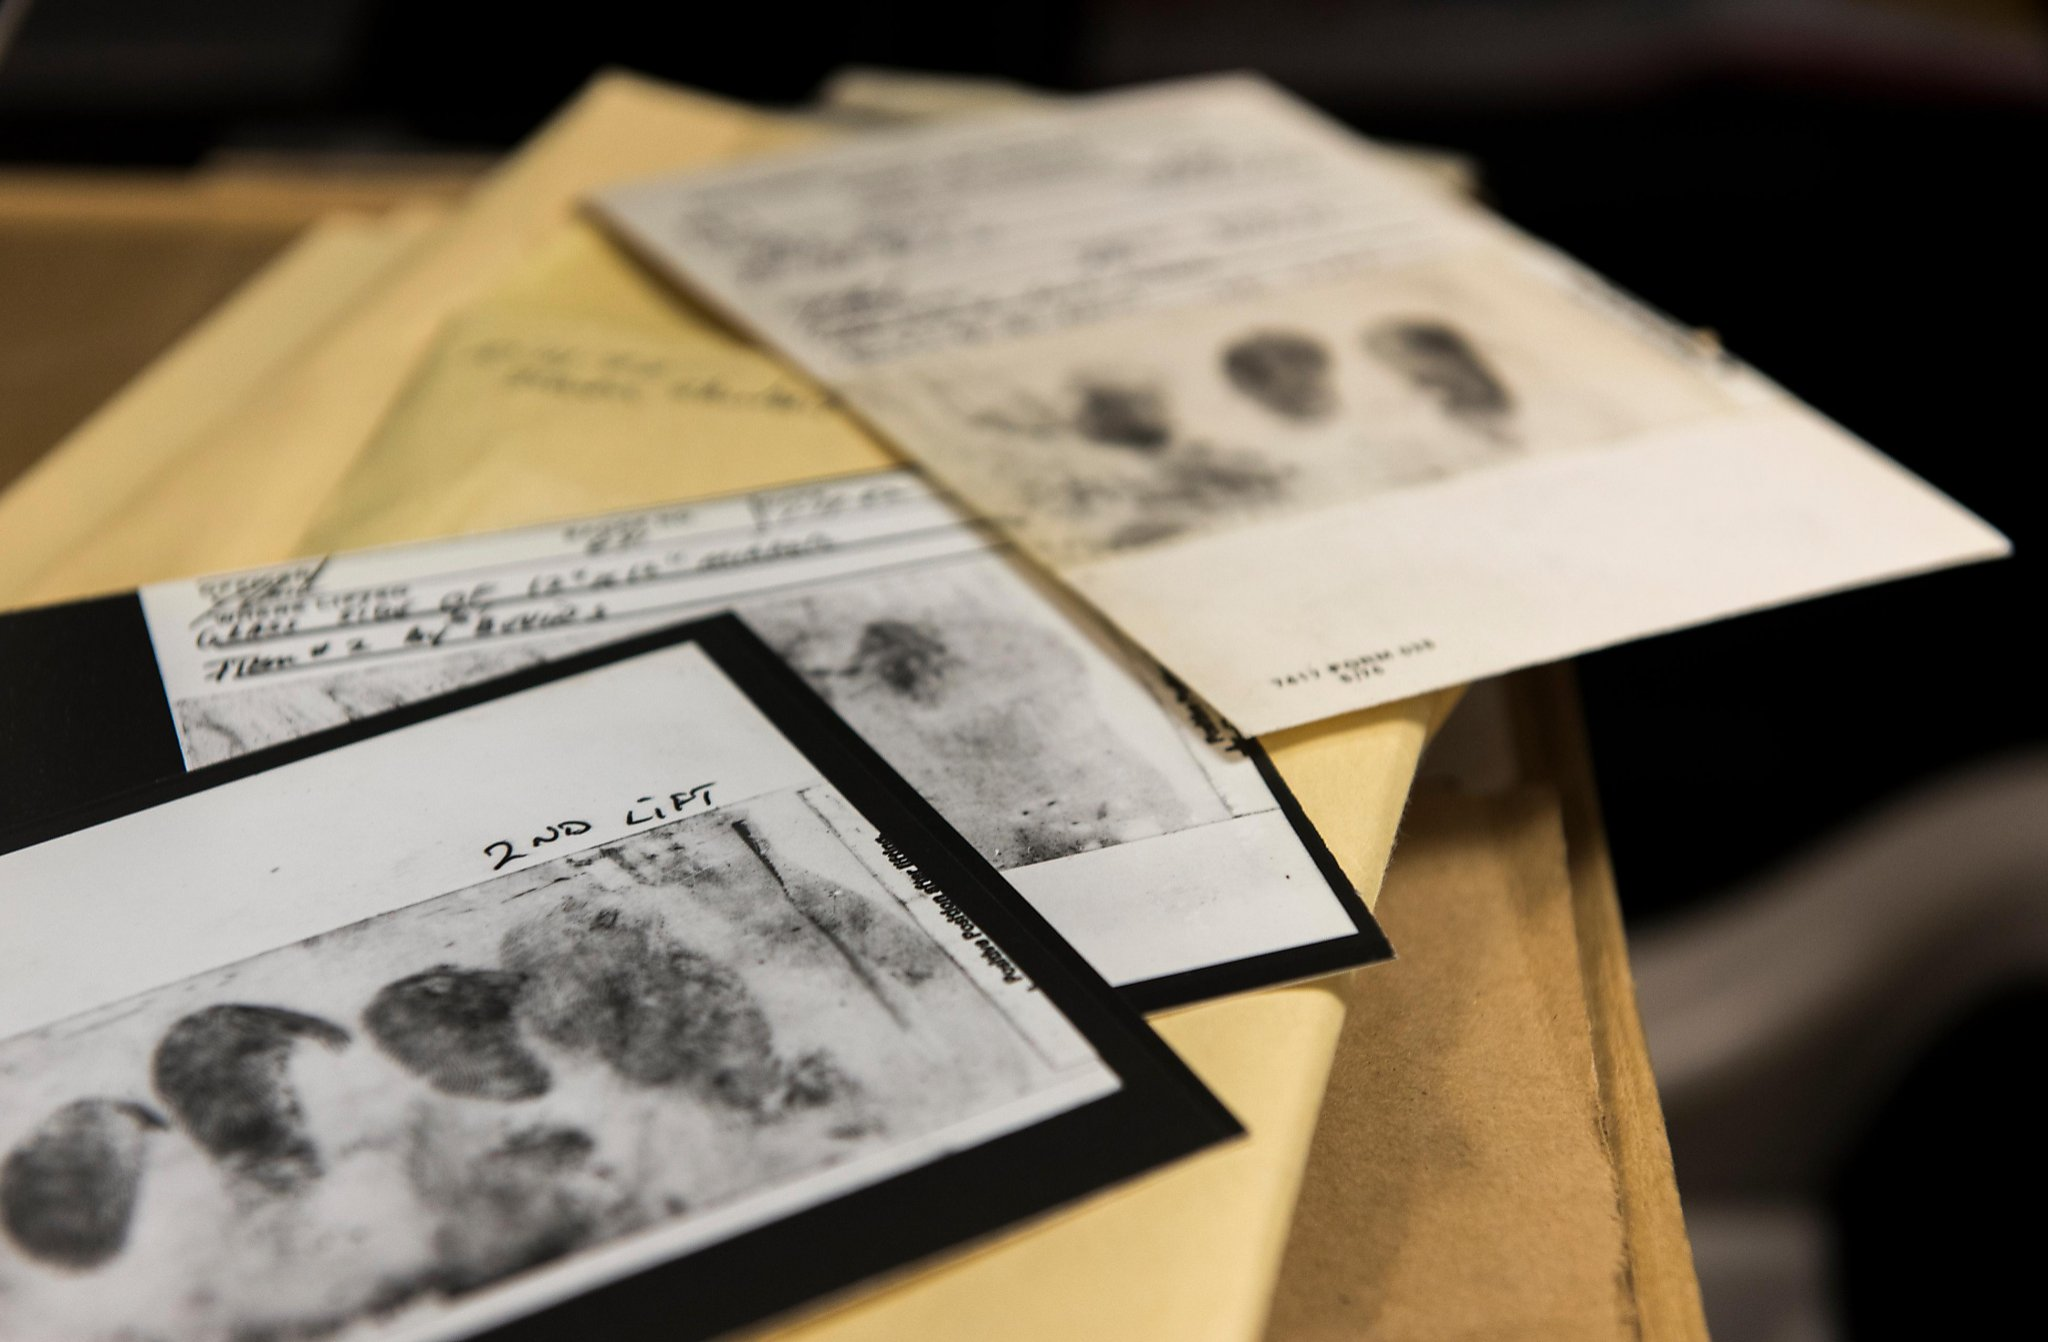 Arrest of suspected Golden State Killer through genealogy opens